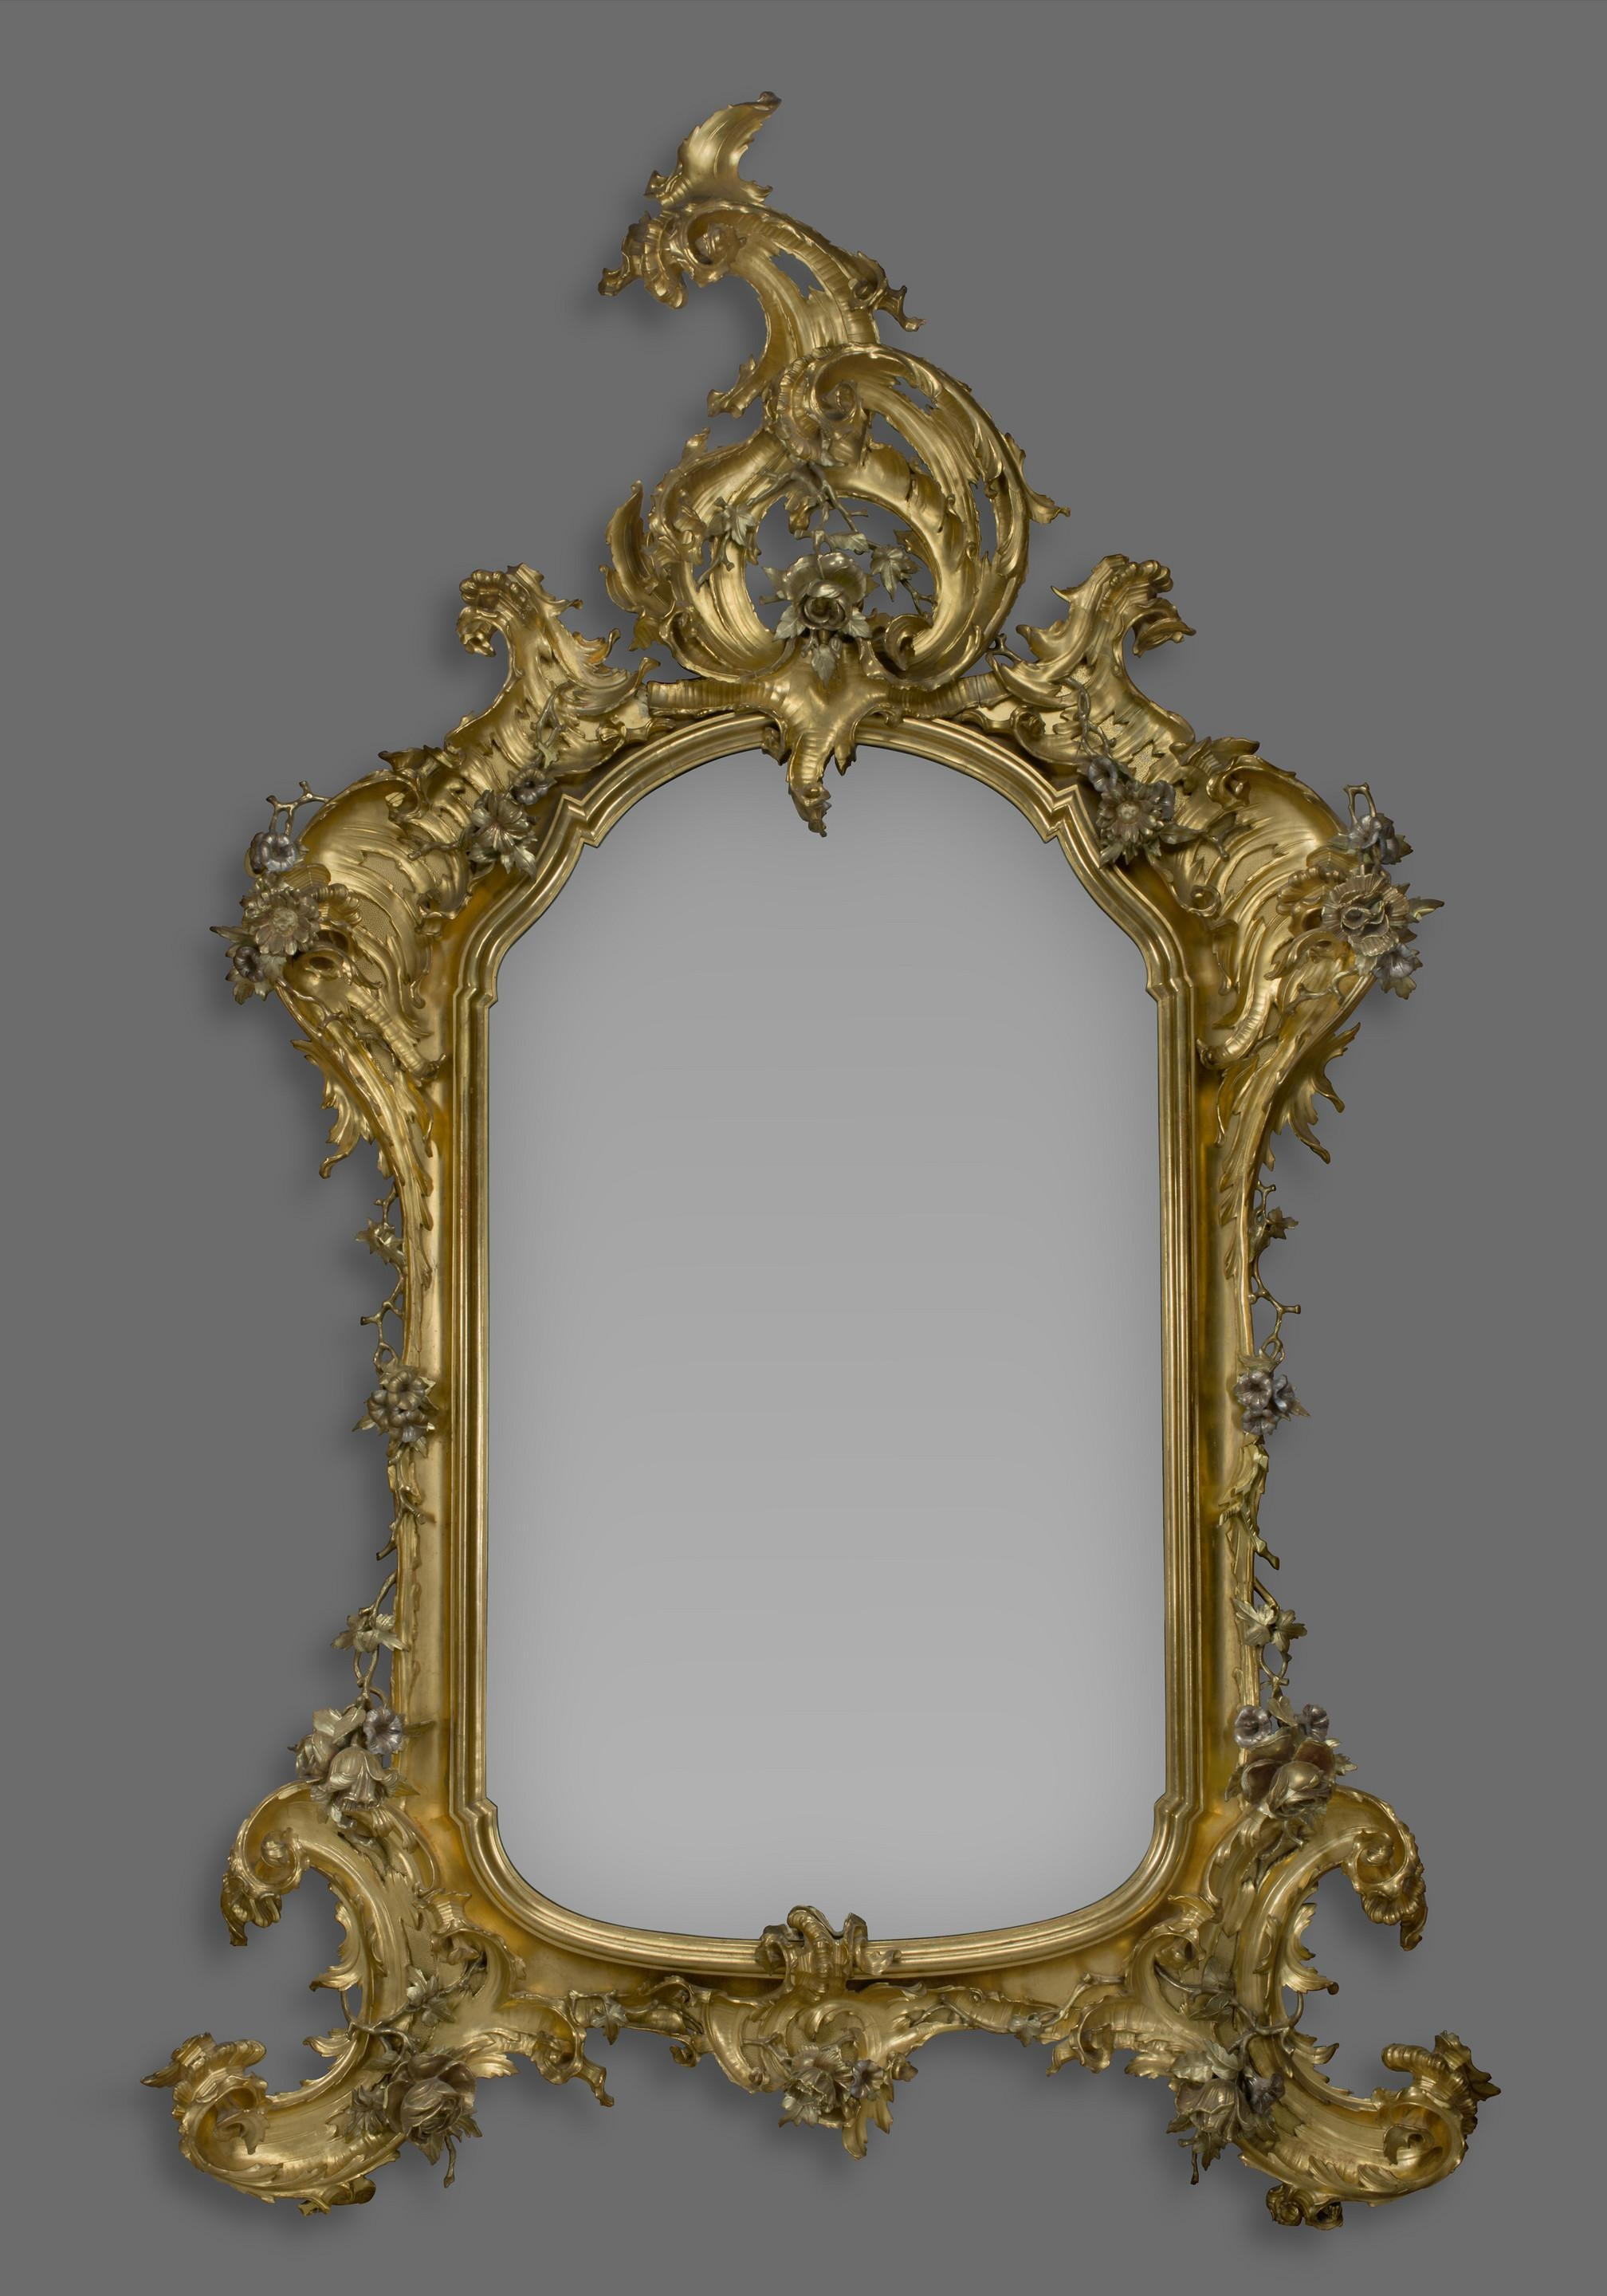 A Large Rococo Style Carved Giltwood And Silver Gilt Mirror (C Pertaining To Rococo Mirror Gold (Image 10 of 20)